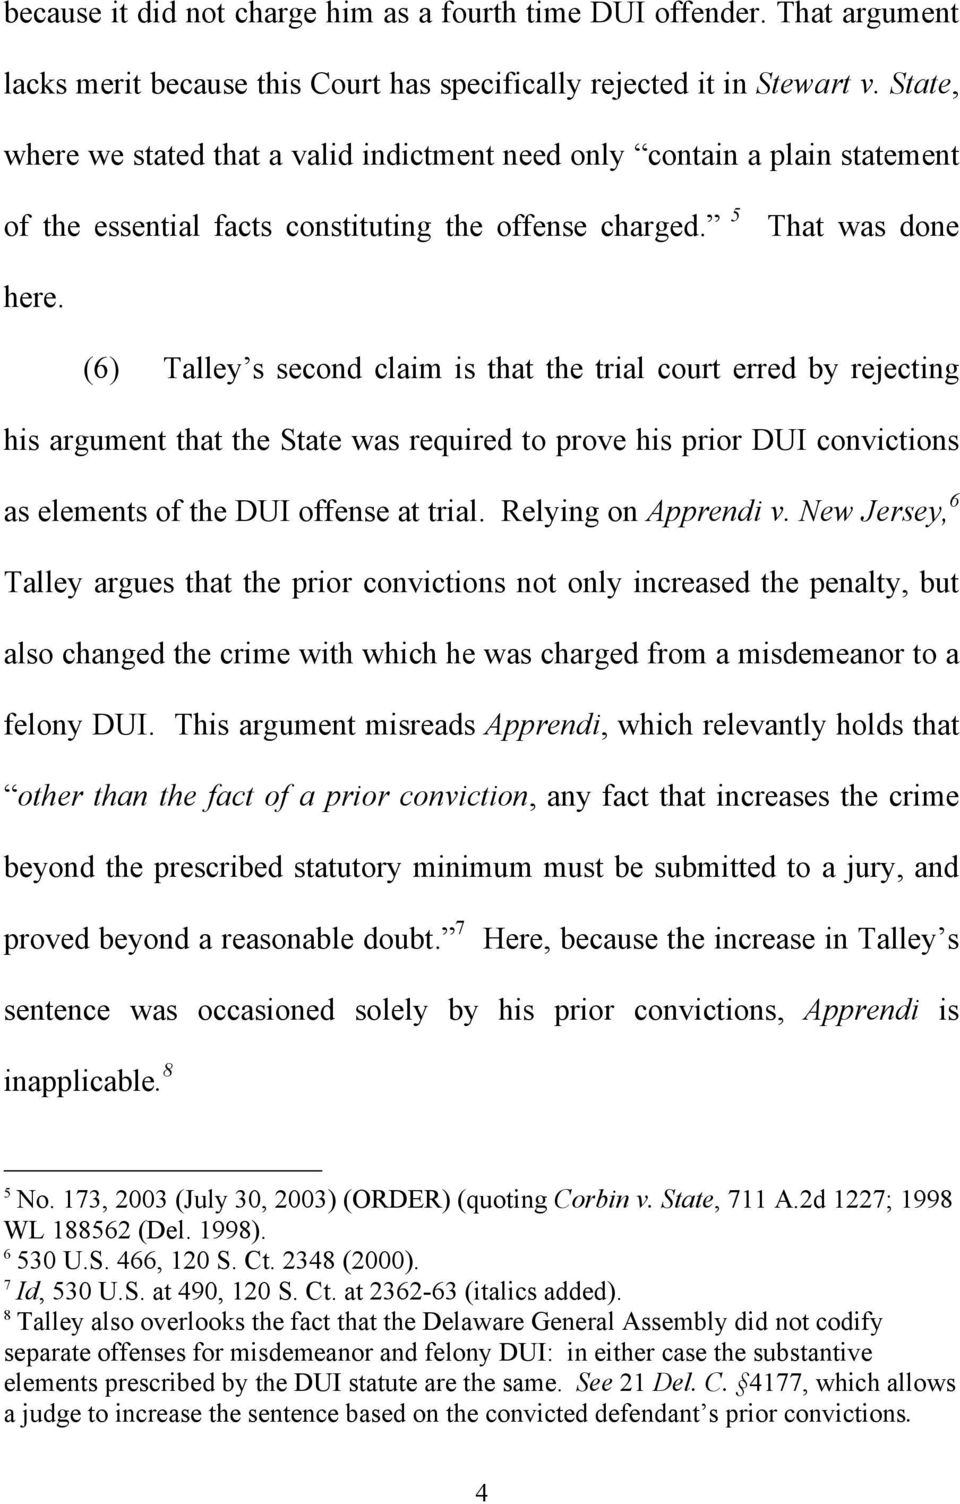 (6) Talley s second claim is that the trial court erred by rejecting his argument that the State was required to prove his prior DUI convictions as elements of the DUI offense at trial.